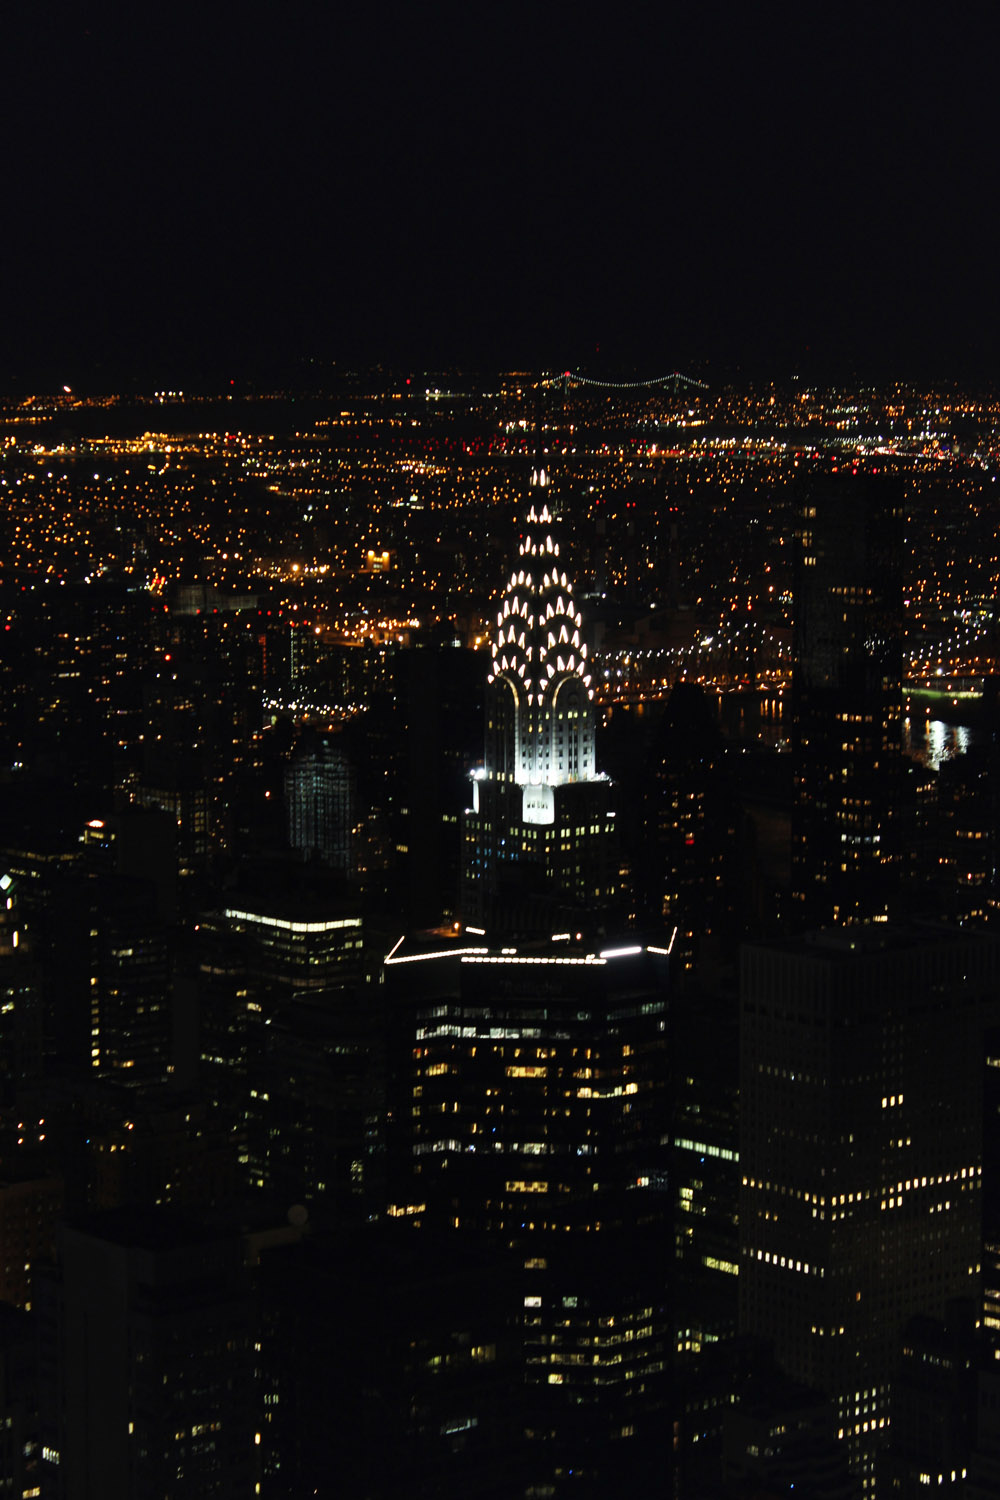 fatimayarie-newyorkcity-chryslerbuilding-citylights-night-usa-travel-img_8363